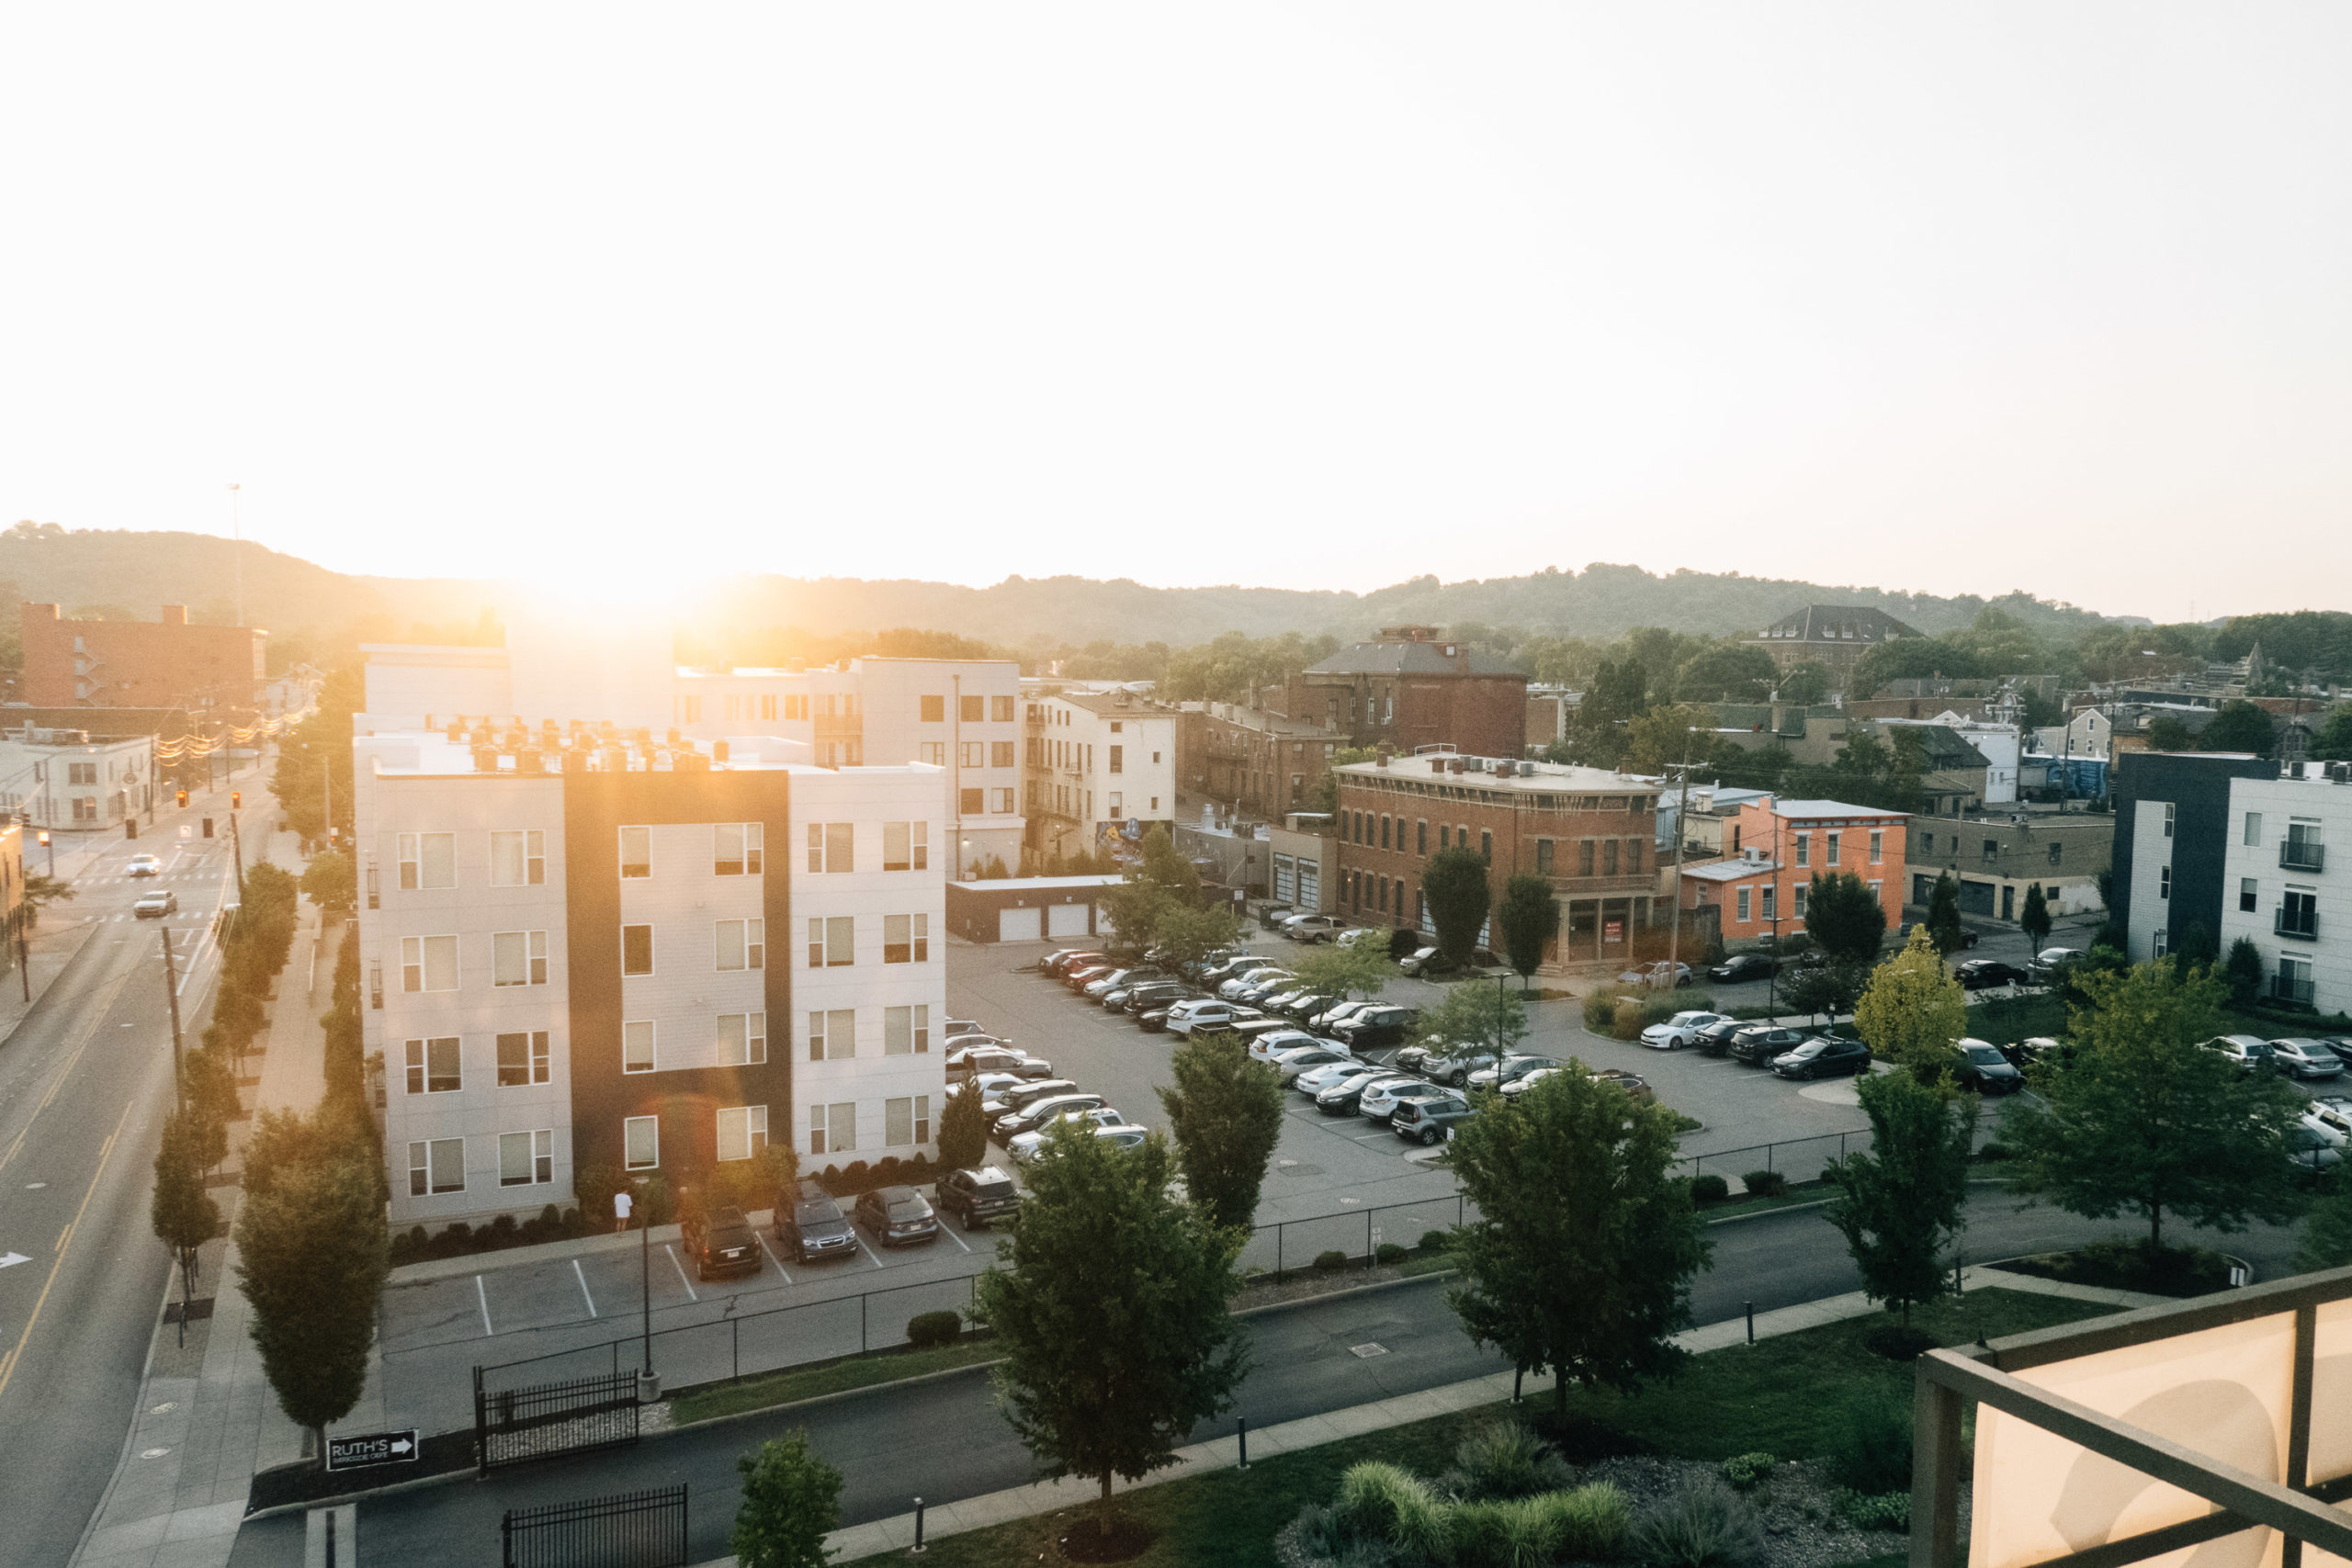 The sun sets over a modern apartment complex with questionable architecture and an old neighborhood with character